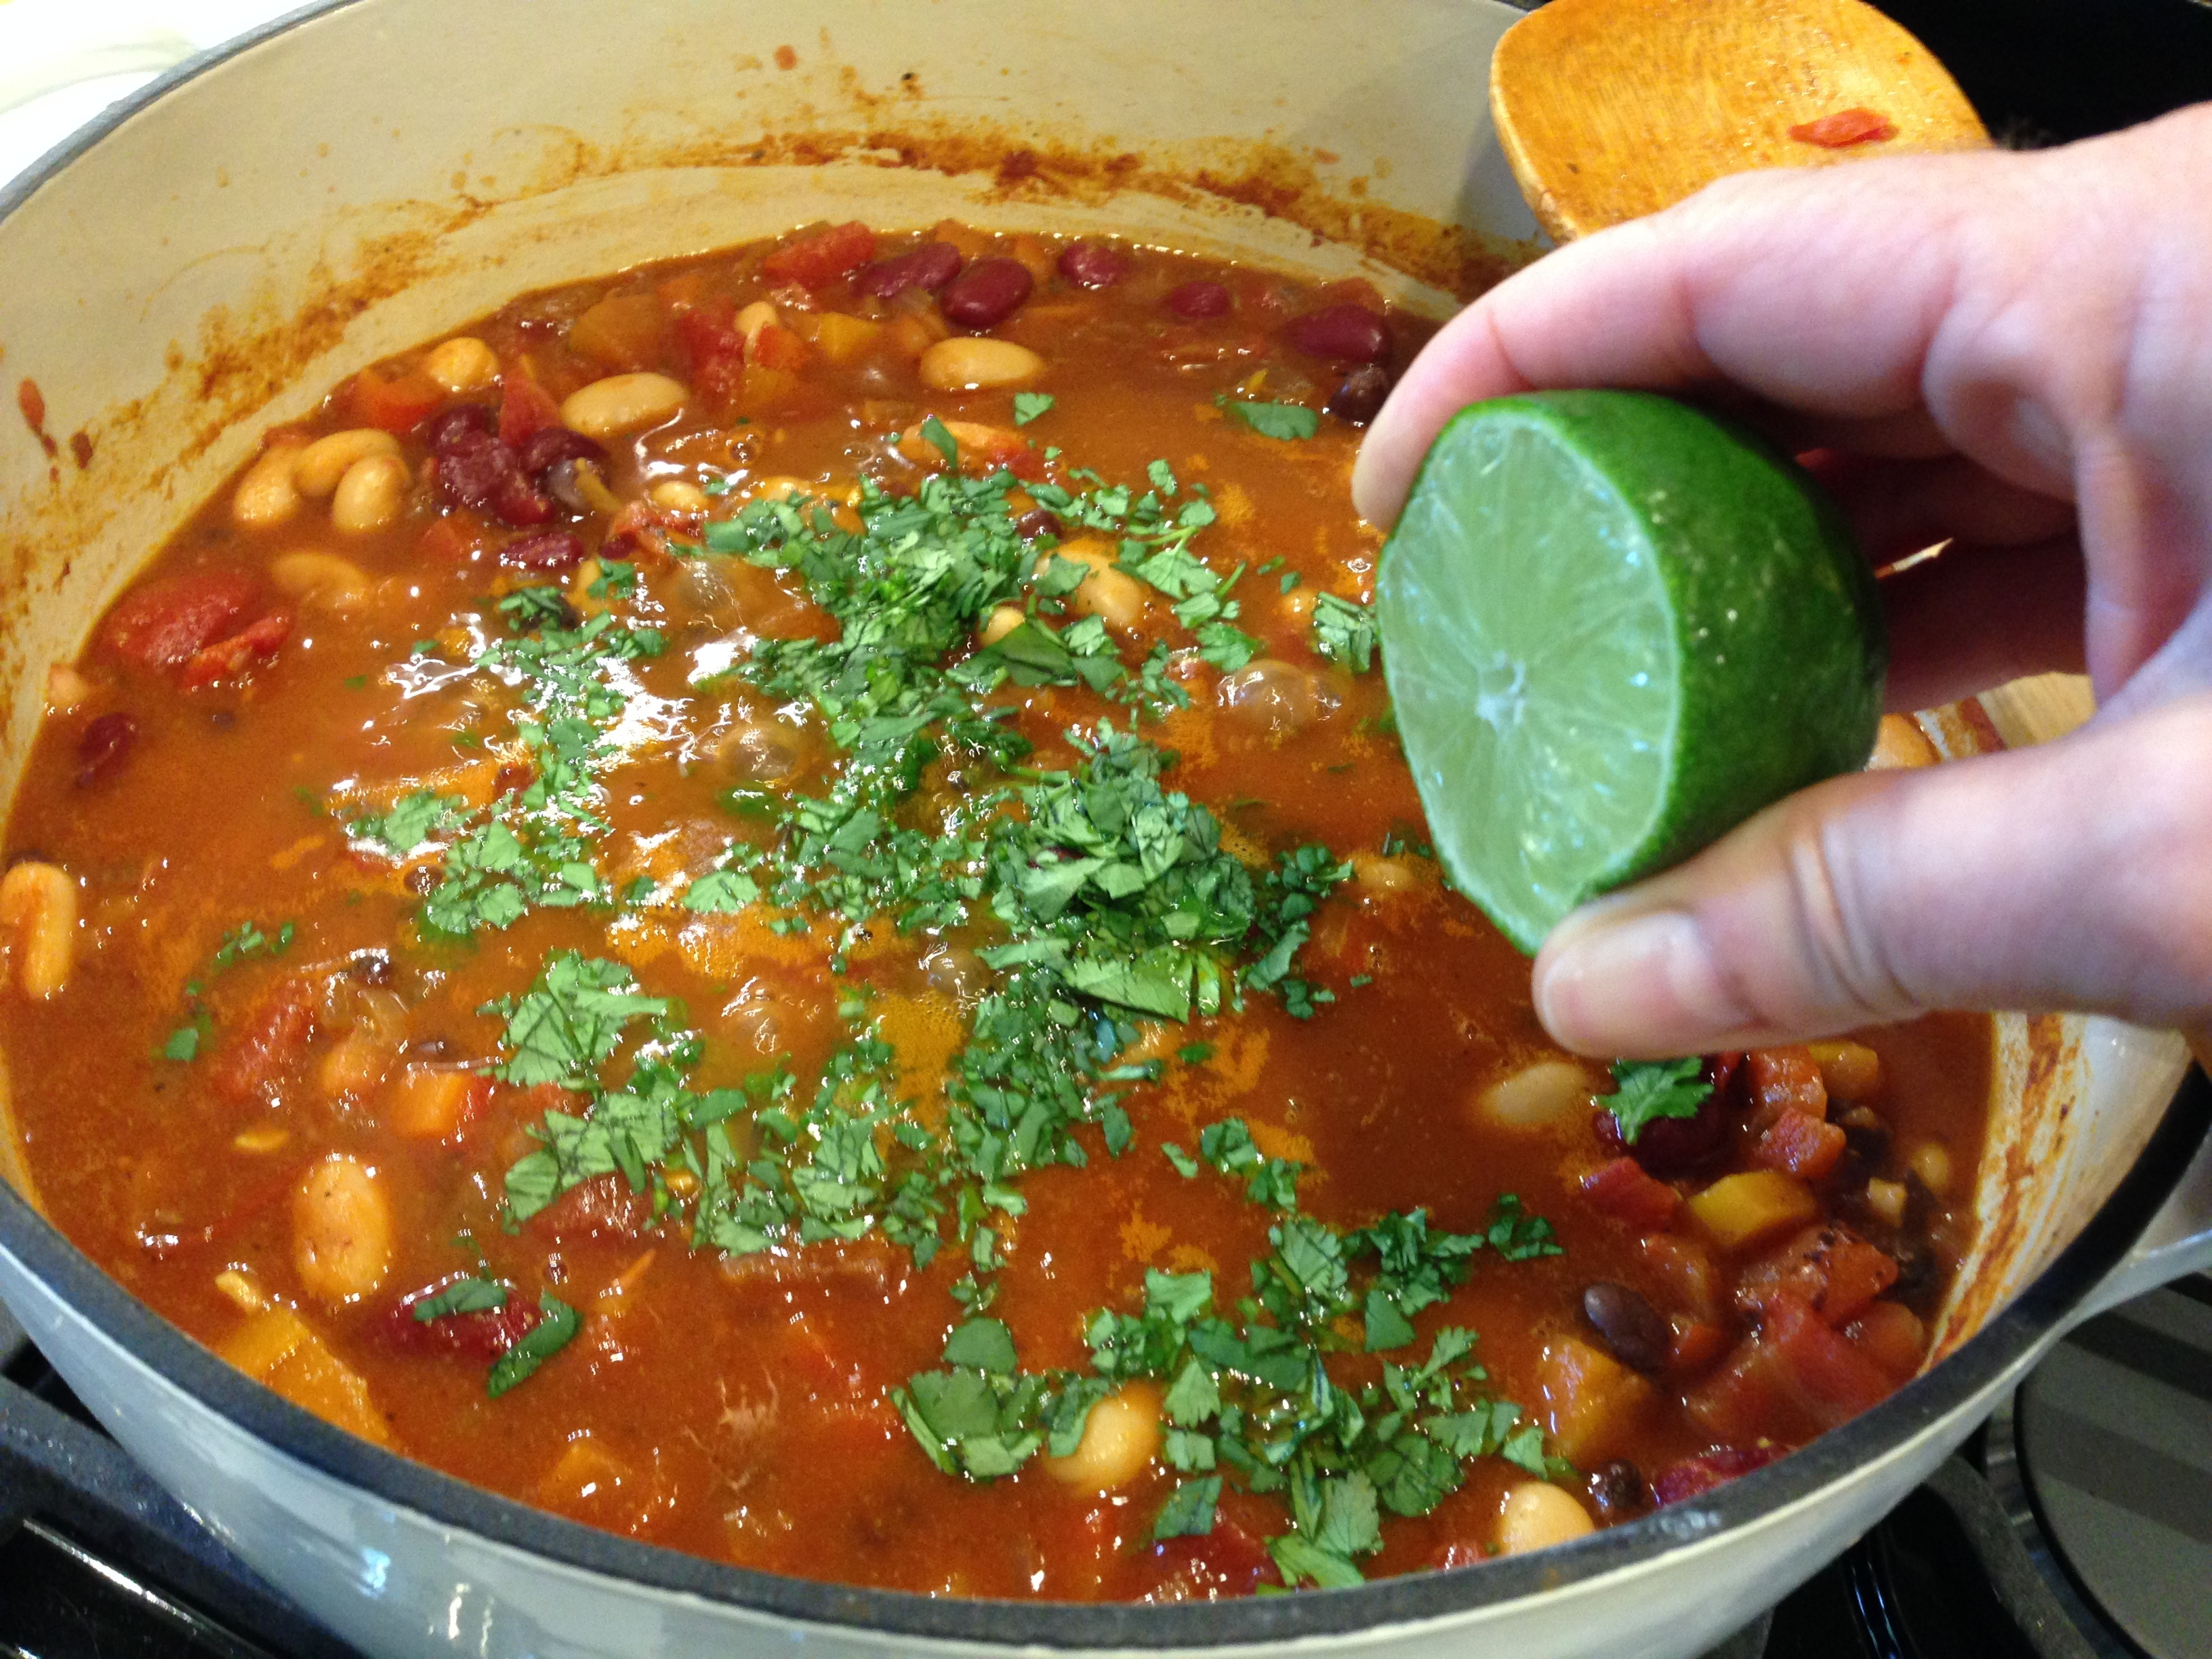 Add lime and cilantro